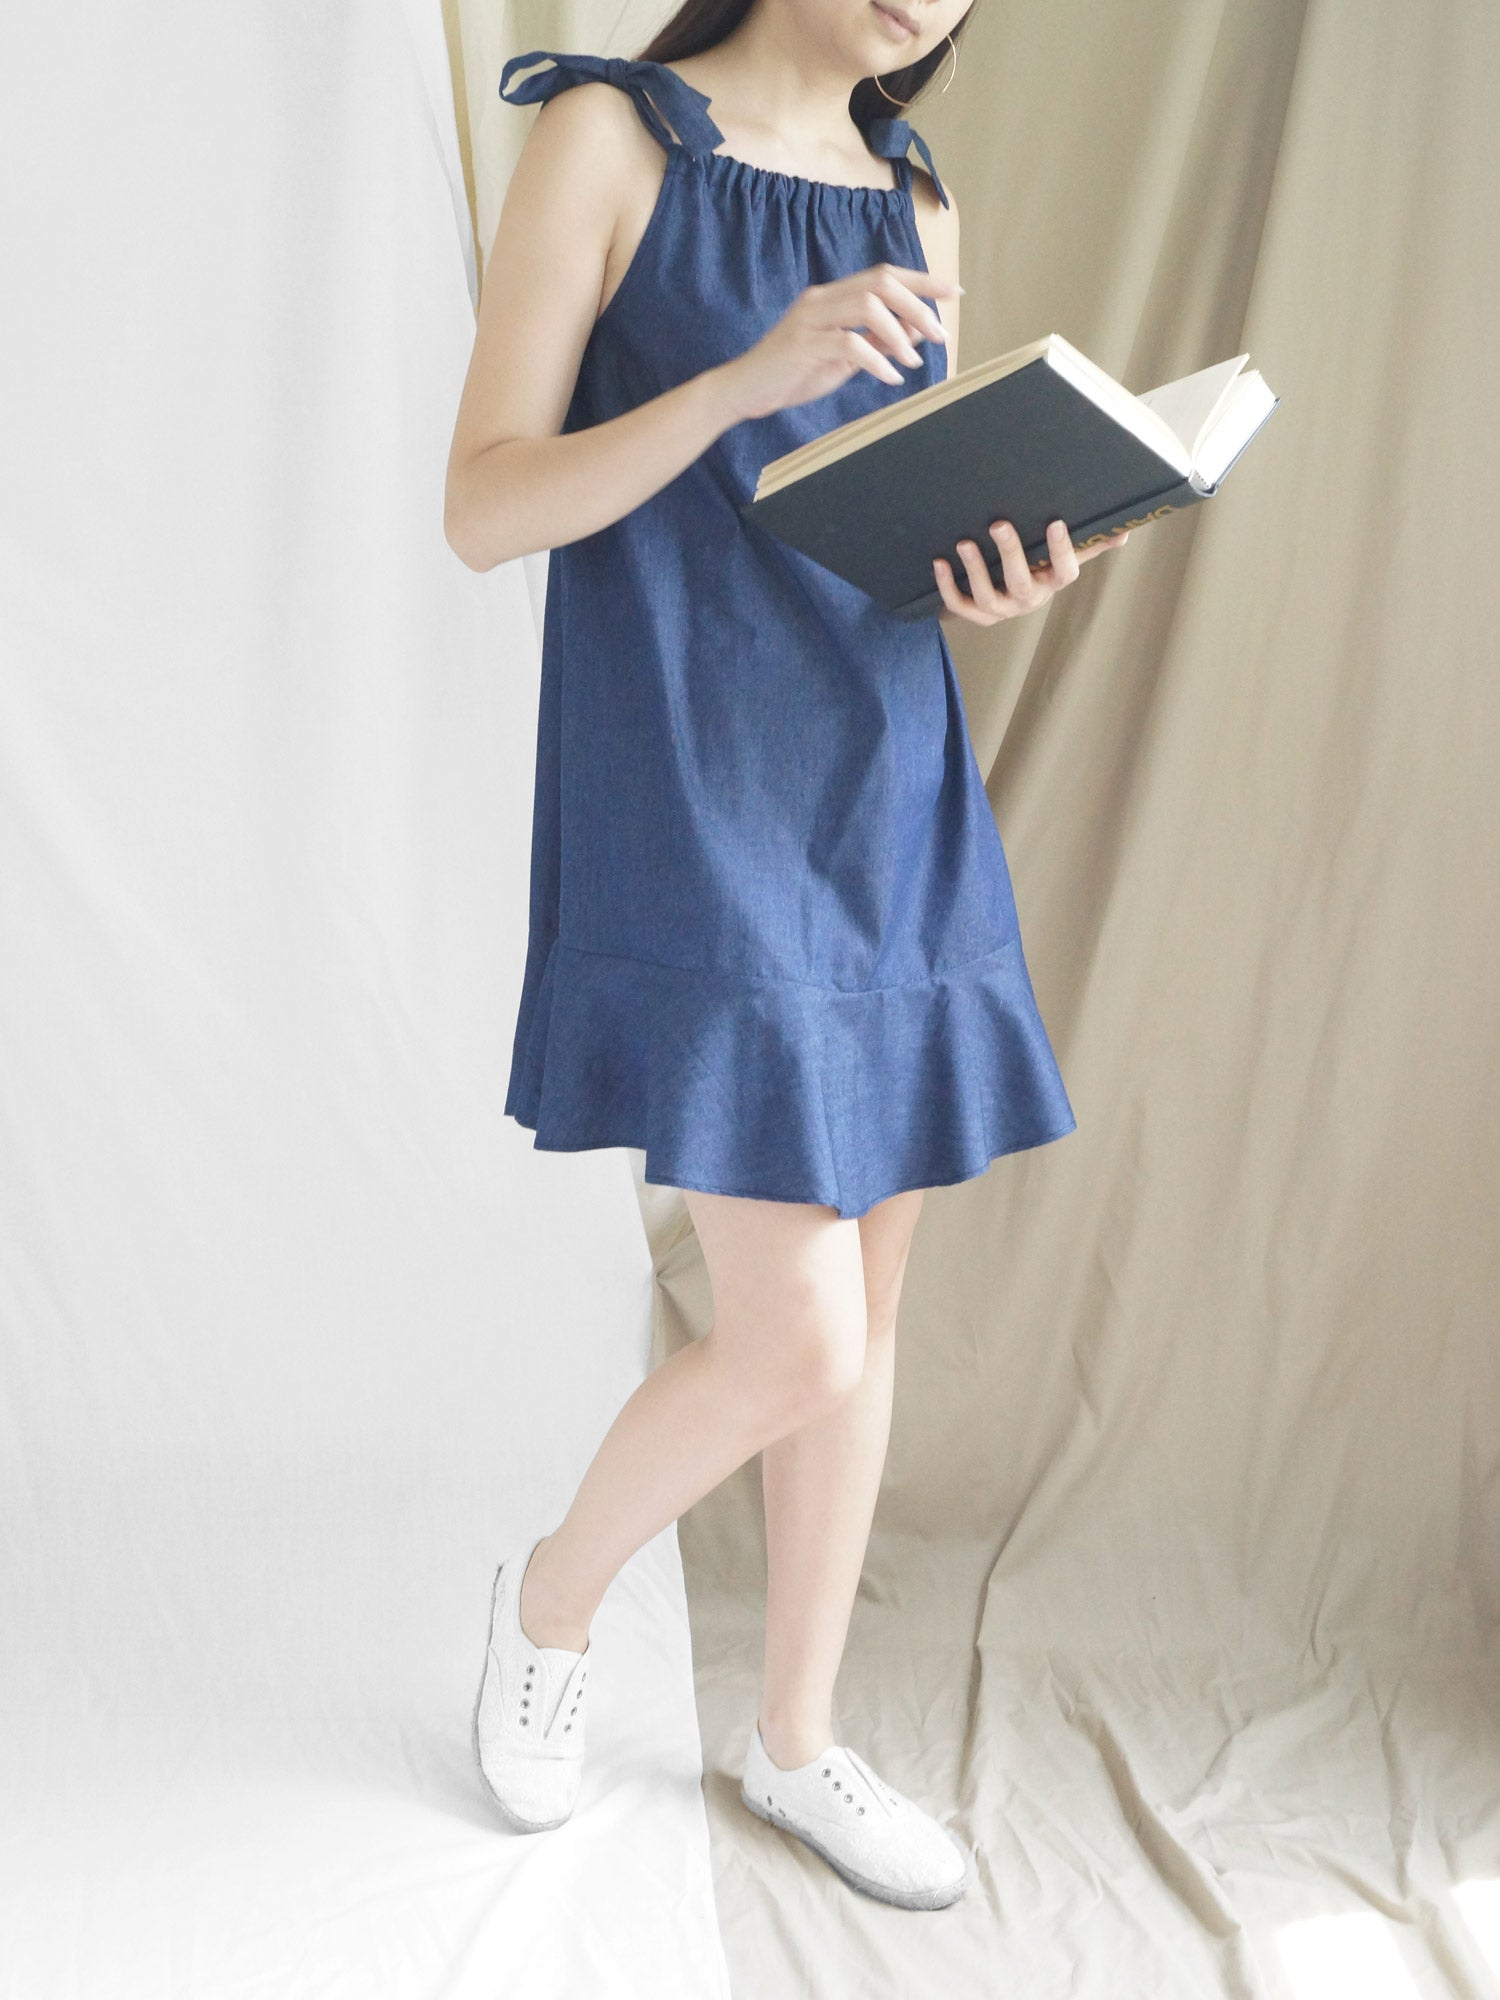 Lulu Ribbon Dress - Dusky Blue